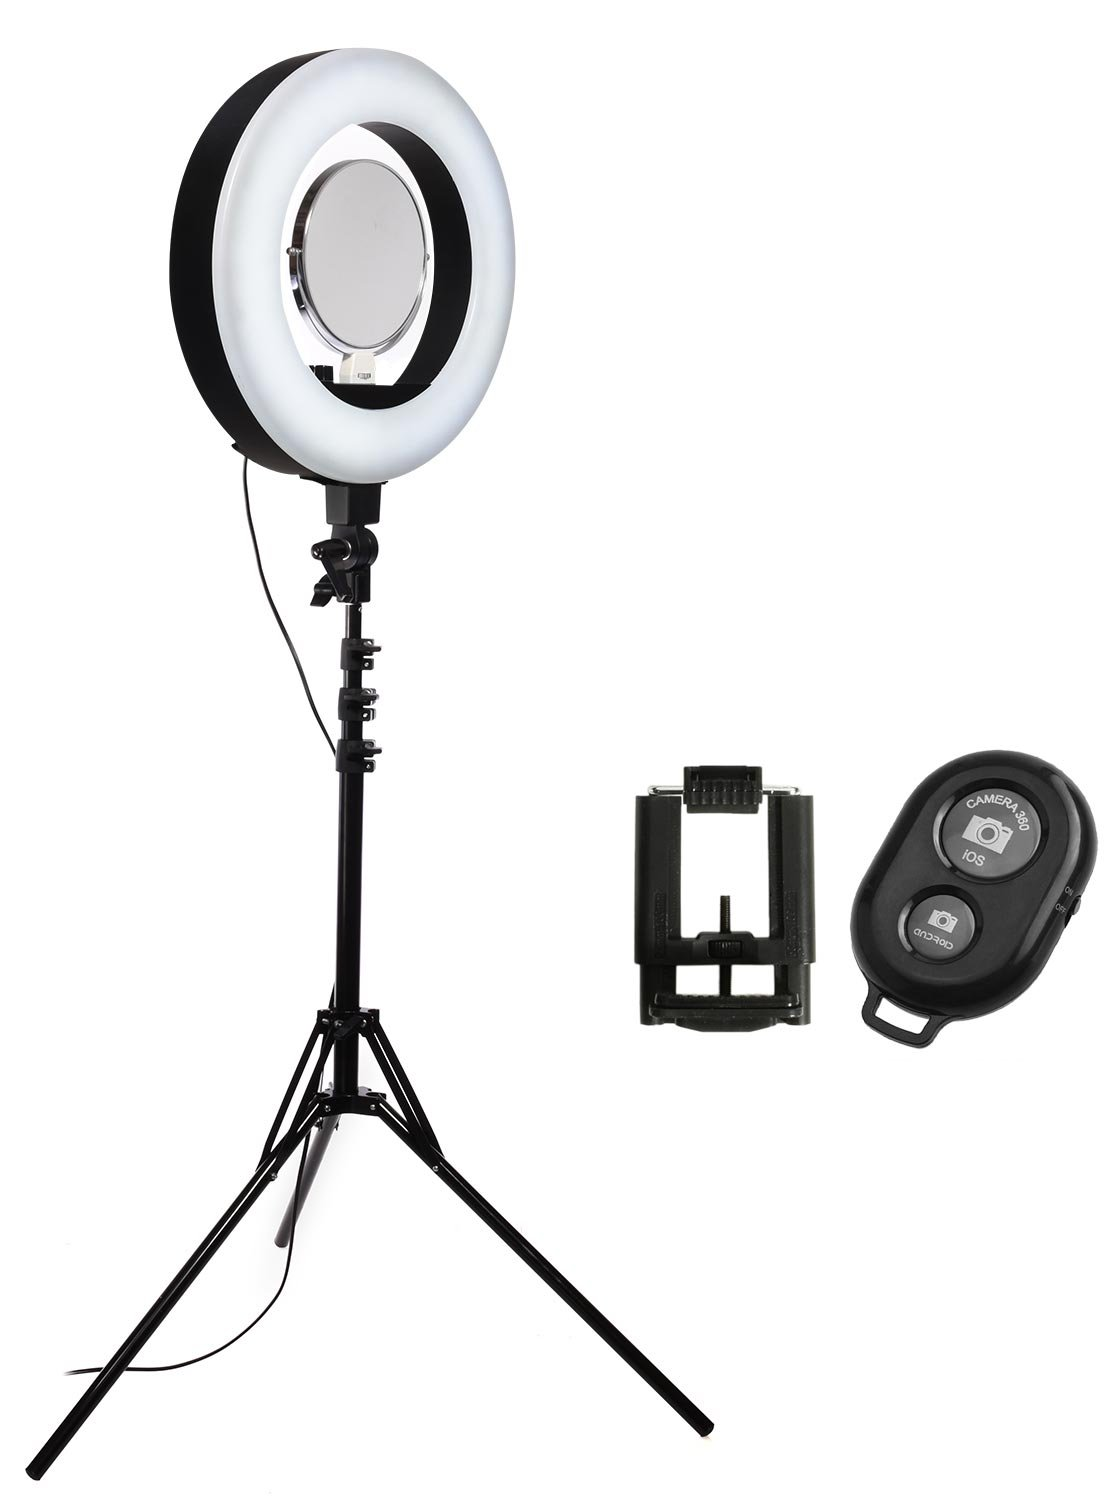 Stellar 18'' LED Diva II Ring Light (Black) w/Wireless Bluetooth Camera Shutter Remote Control for IOS & Android Phones and Universal Smartphone Tripod Mount & Adapter For Most Smartphones